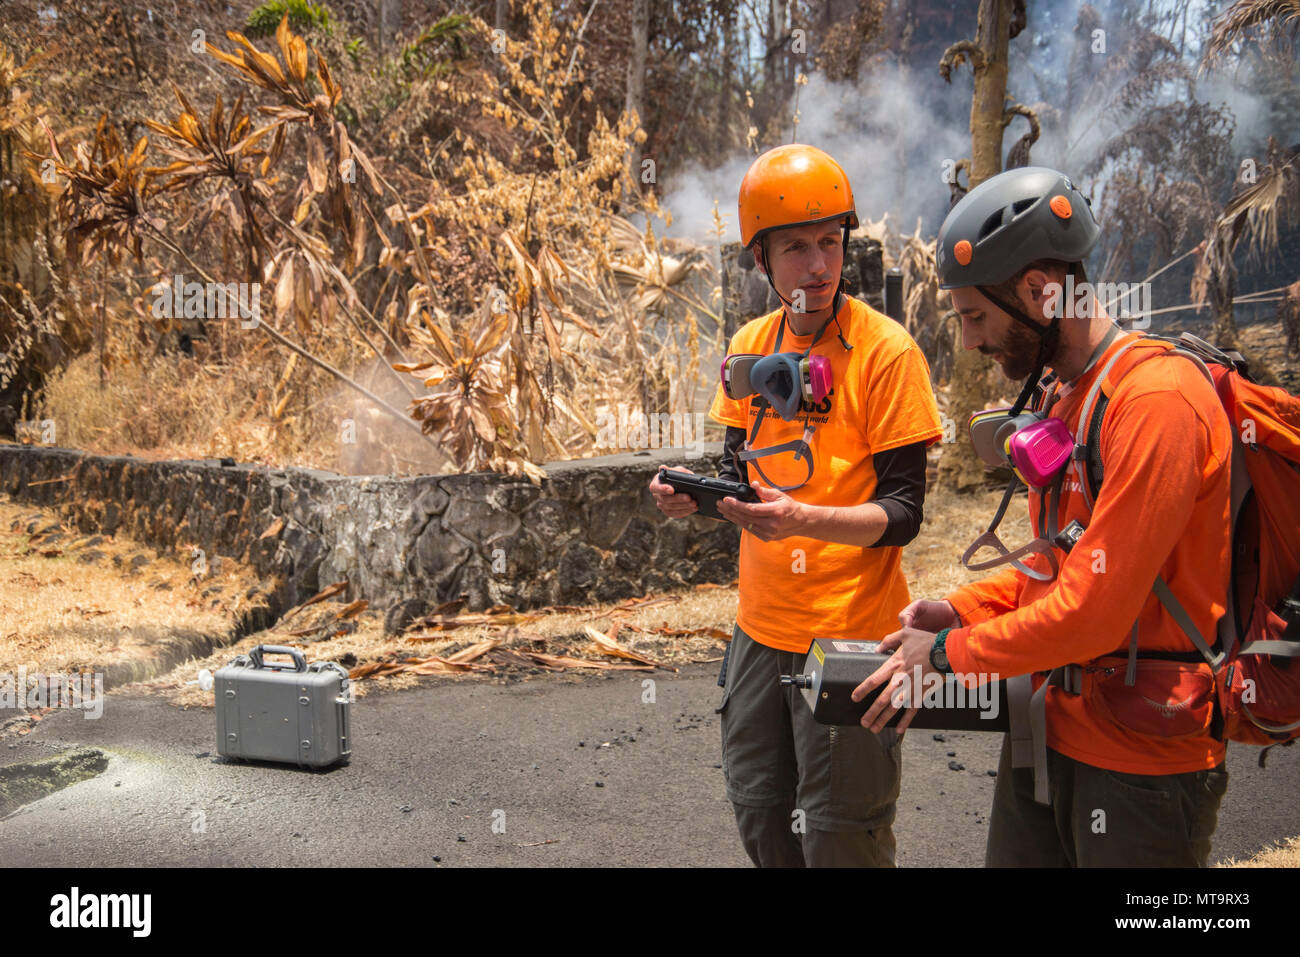 Pāhoa, Hawaii, May 19, 2018 – U.S. Geological Survey (USGS) Research Scientist Christoph Kern (left) and USGS volunteer Allen Lerner (right) use sulfur dioxide (SO2) sensors to test the air quality after the Kīlauea volcanic eruption. The residential area of Leilani Estates has been evacuated due to the high concentration of SO2 emitting from the cracks in the earth that spilled lava into the subdivisions. At the request of the state, FEMA staff are on the ground to support local officials with life-saving emergency protective measures, debris removal, and the repair, replacement, or restorati - Stock Image